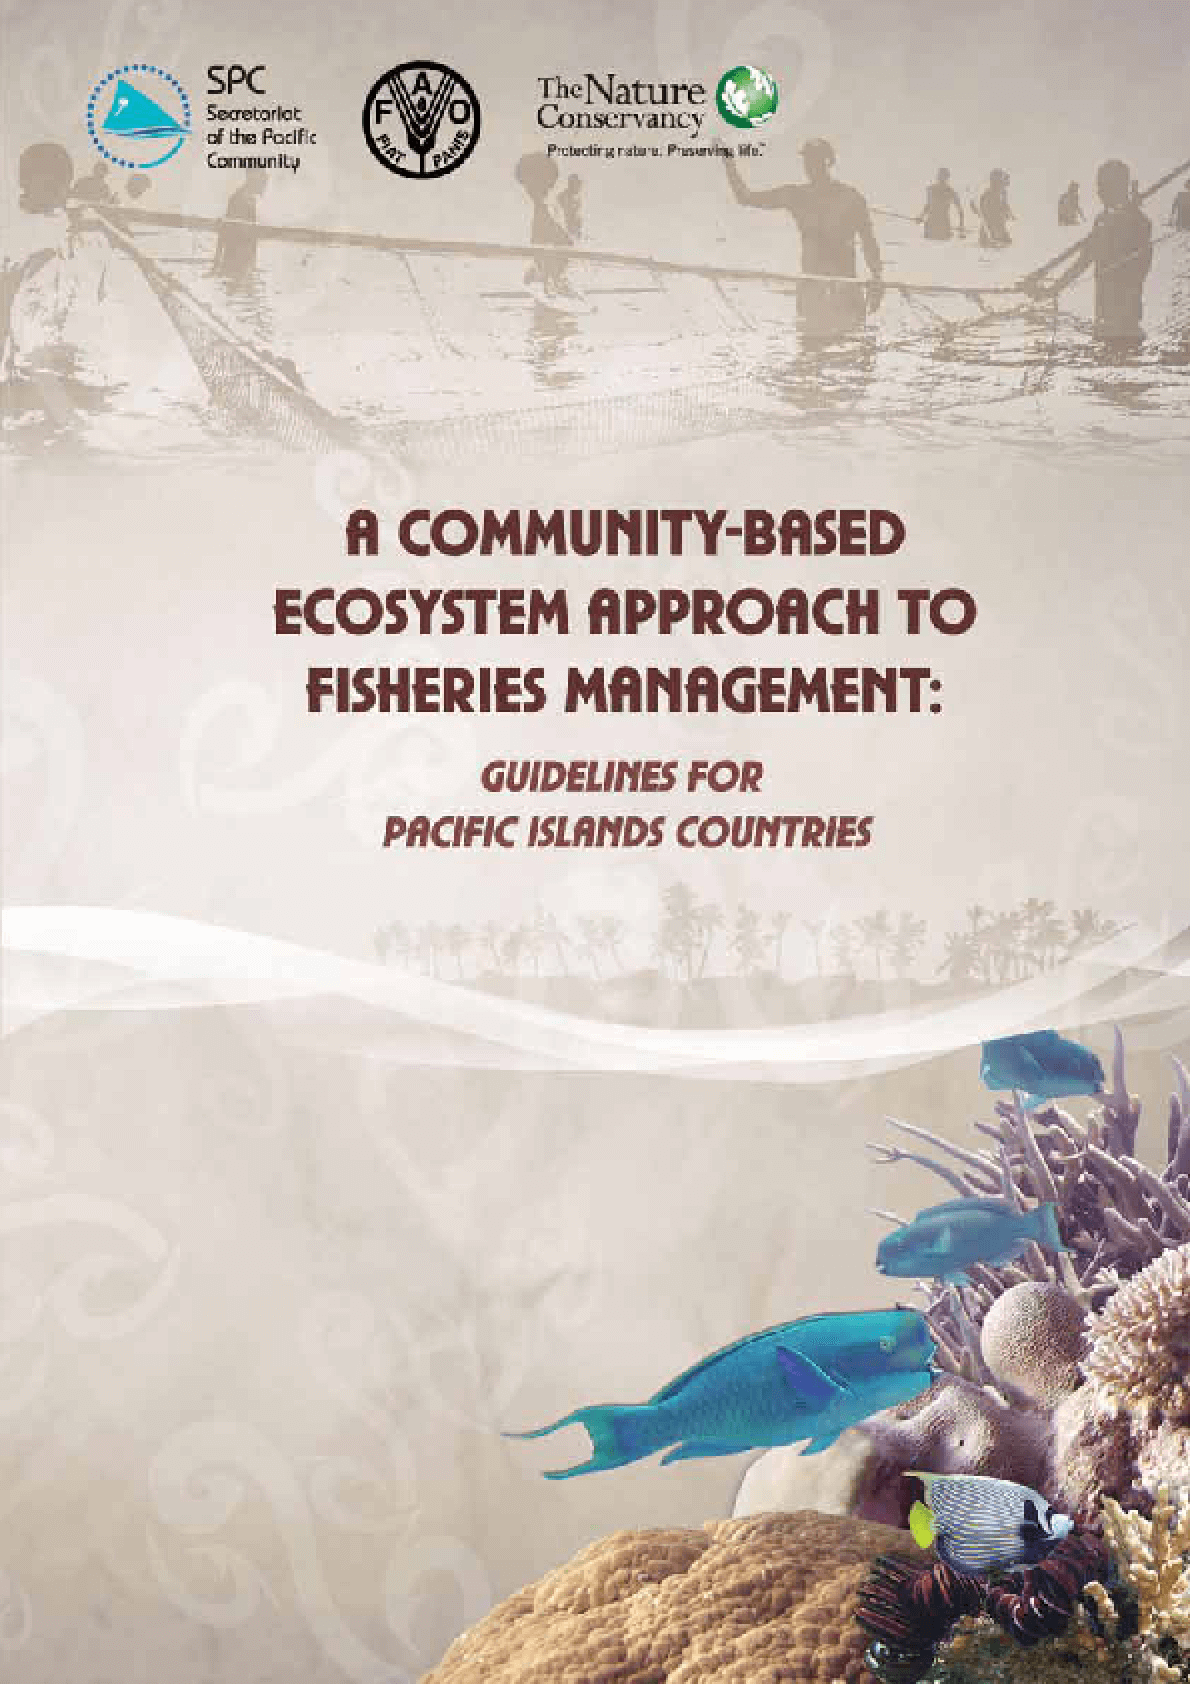 A Community-Based Ecosystem Approach to Fisheries Management: Guidelines for Pacific Islands Countries